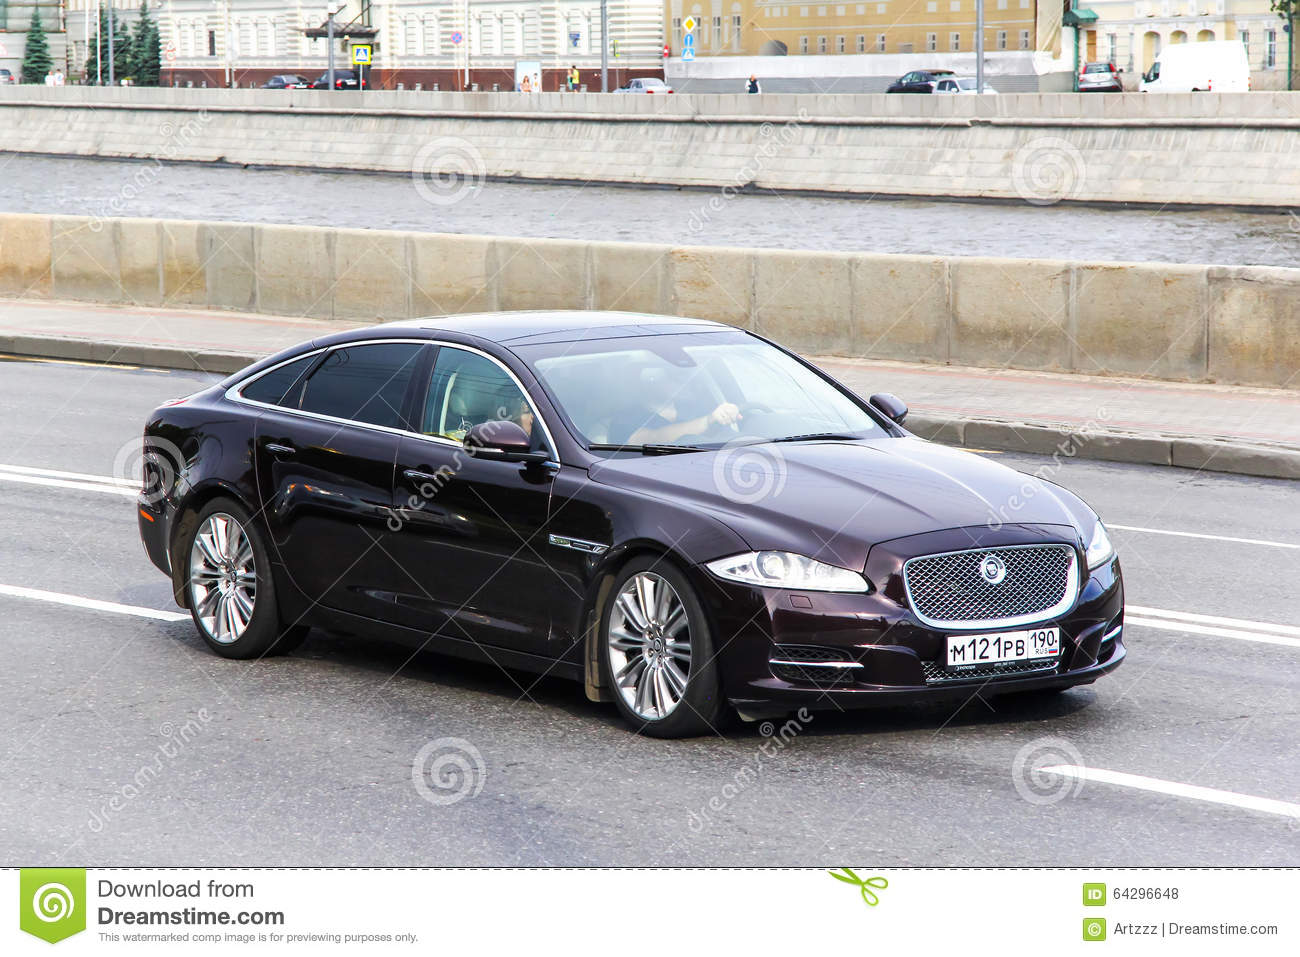 Jaguar xj editorial photo 71143121 Motor city car sales